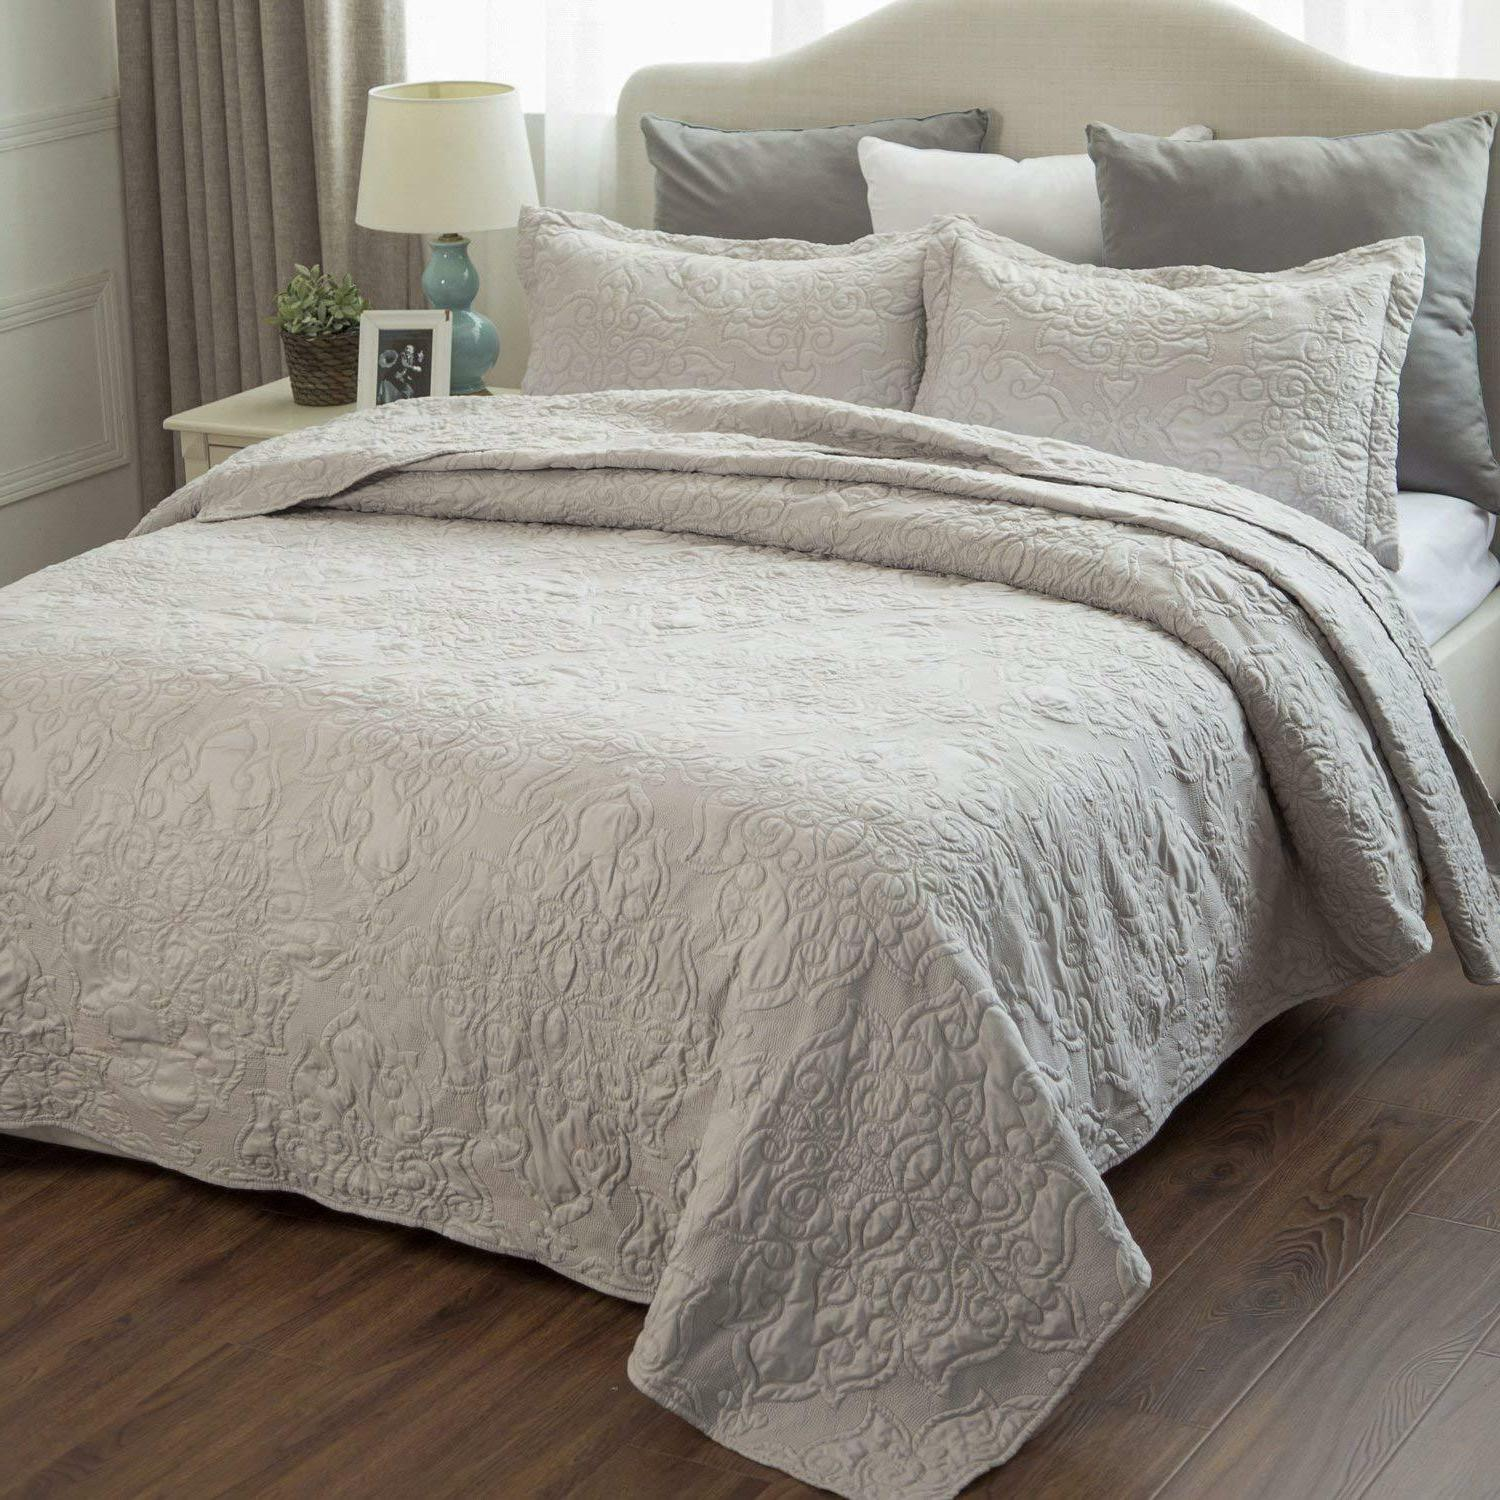 comfy bedding set quilt embroidered full queen